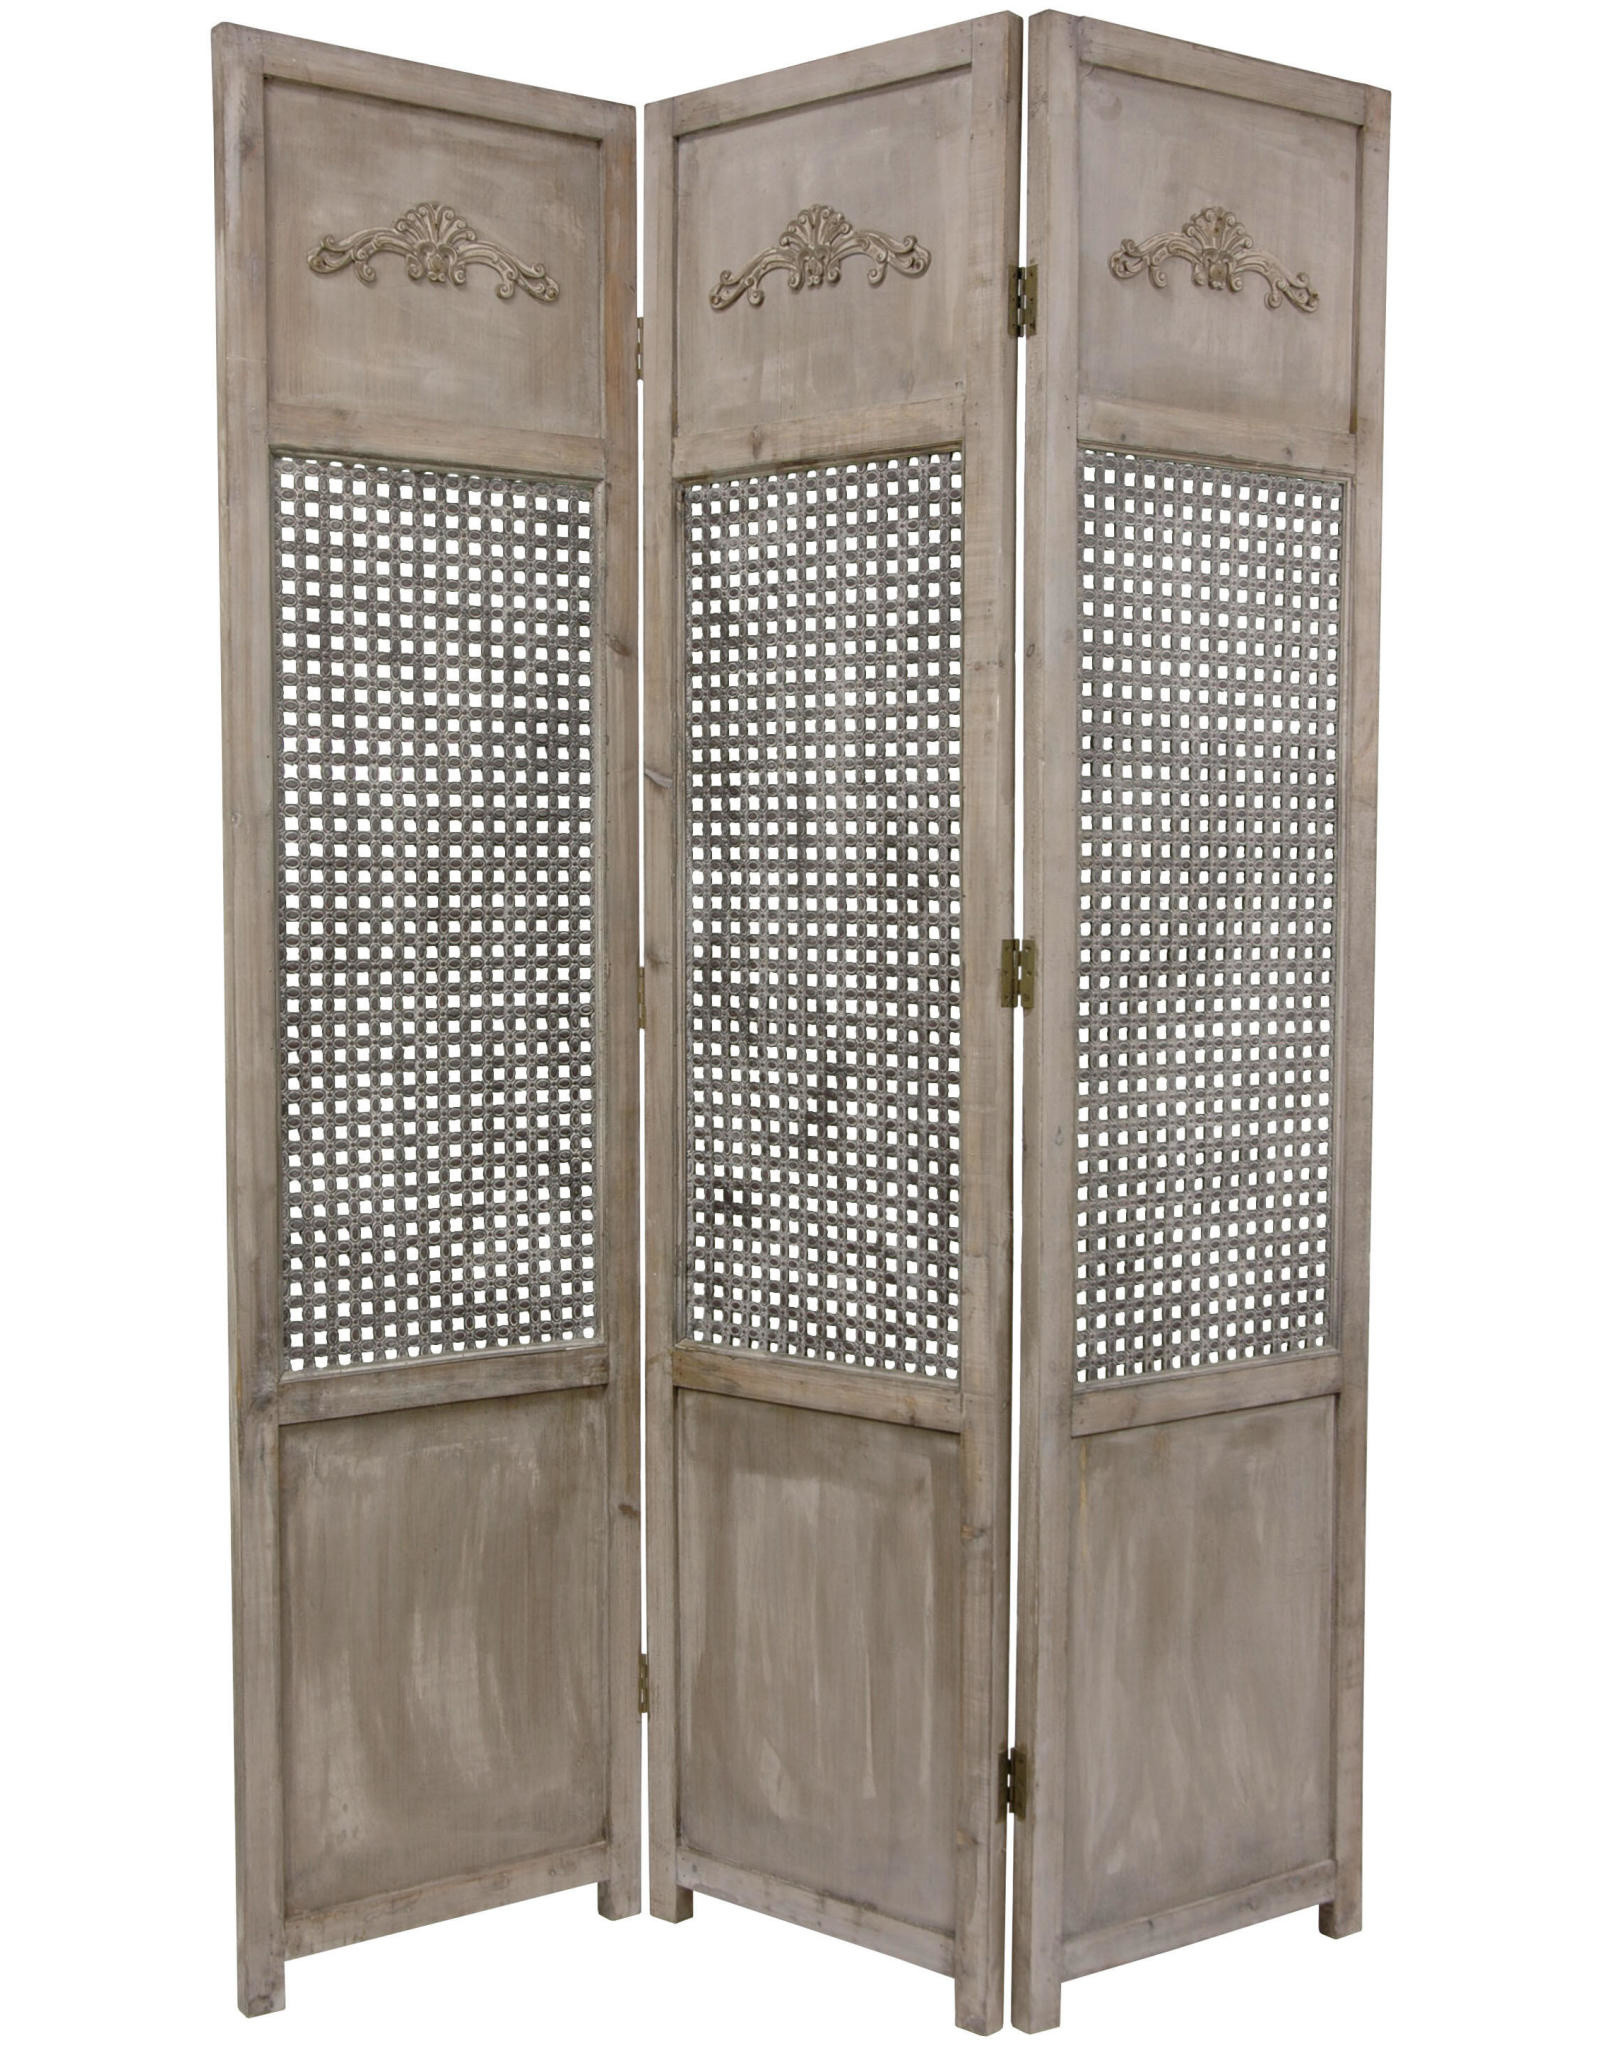 Oriental Furniture 6 ft. Gray 3-Panel Open Mesh Room Divider